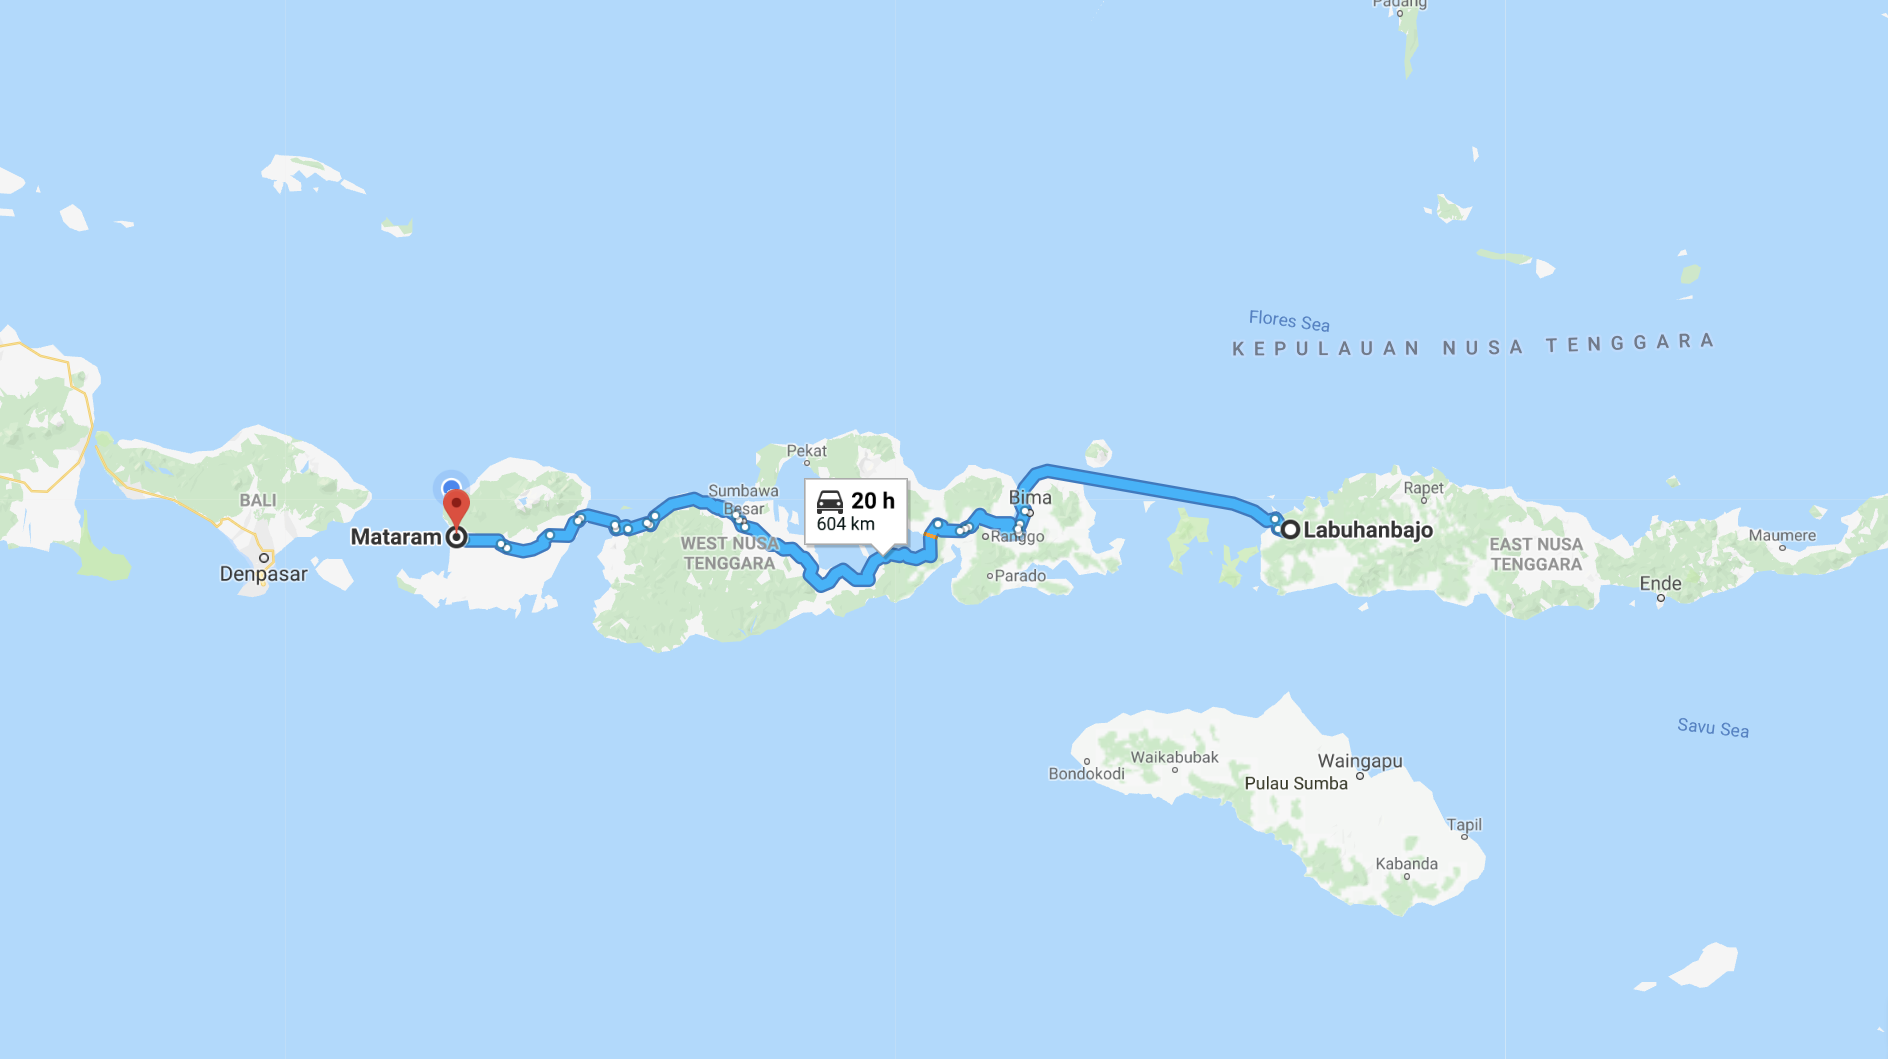 The route.